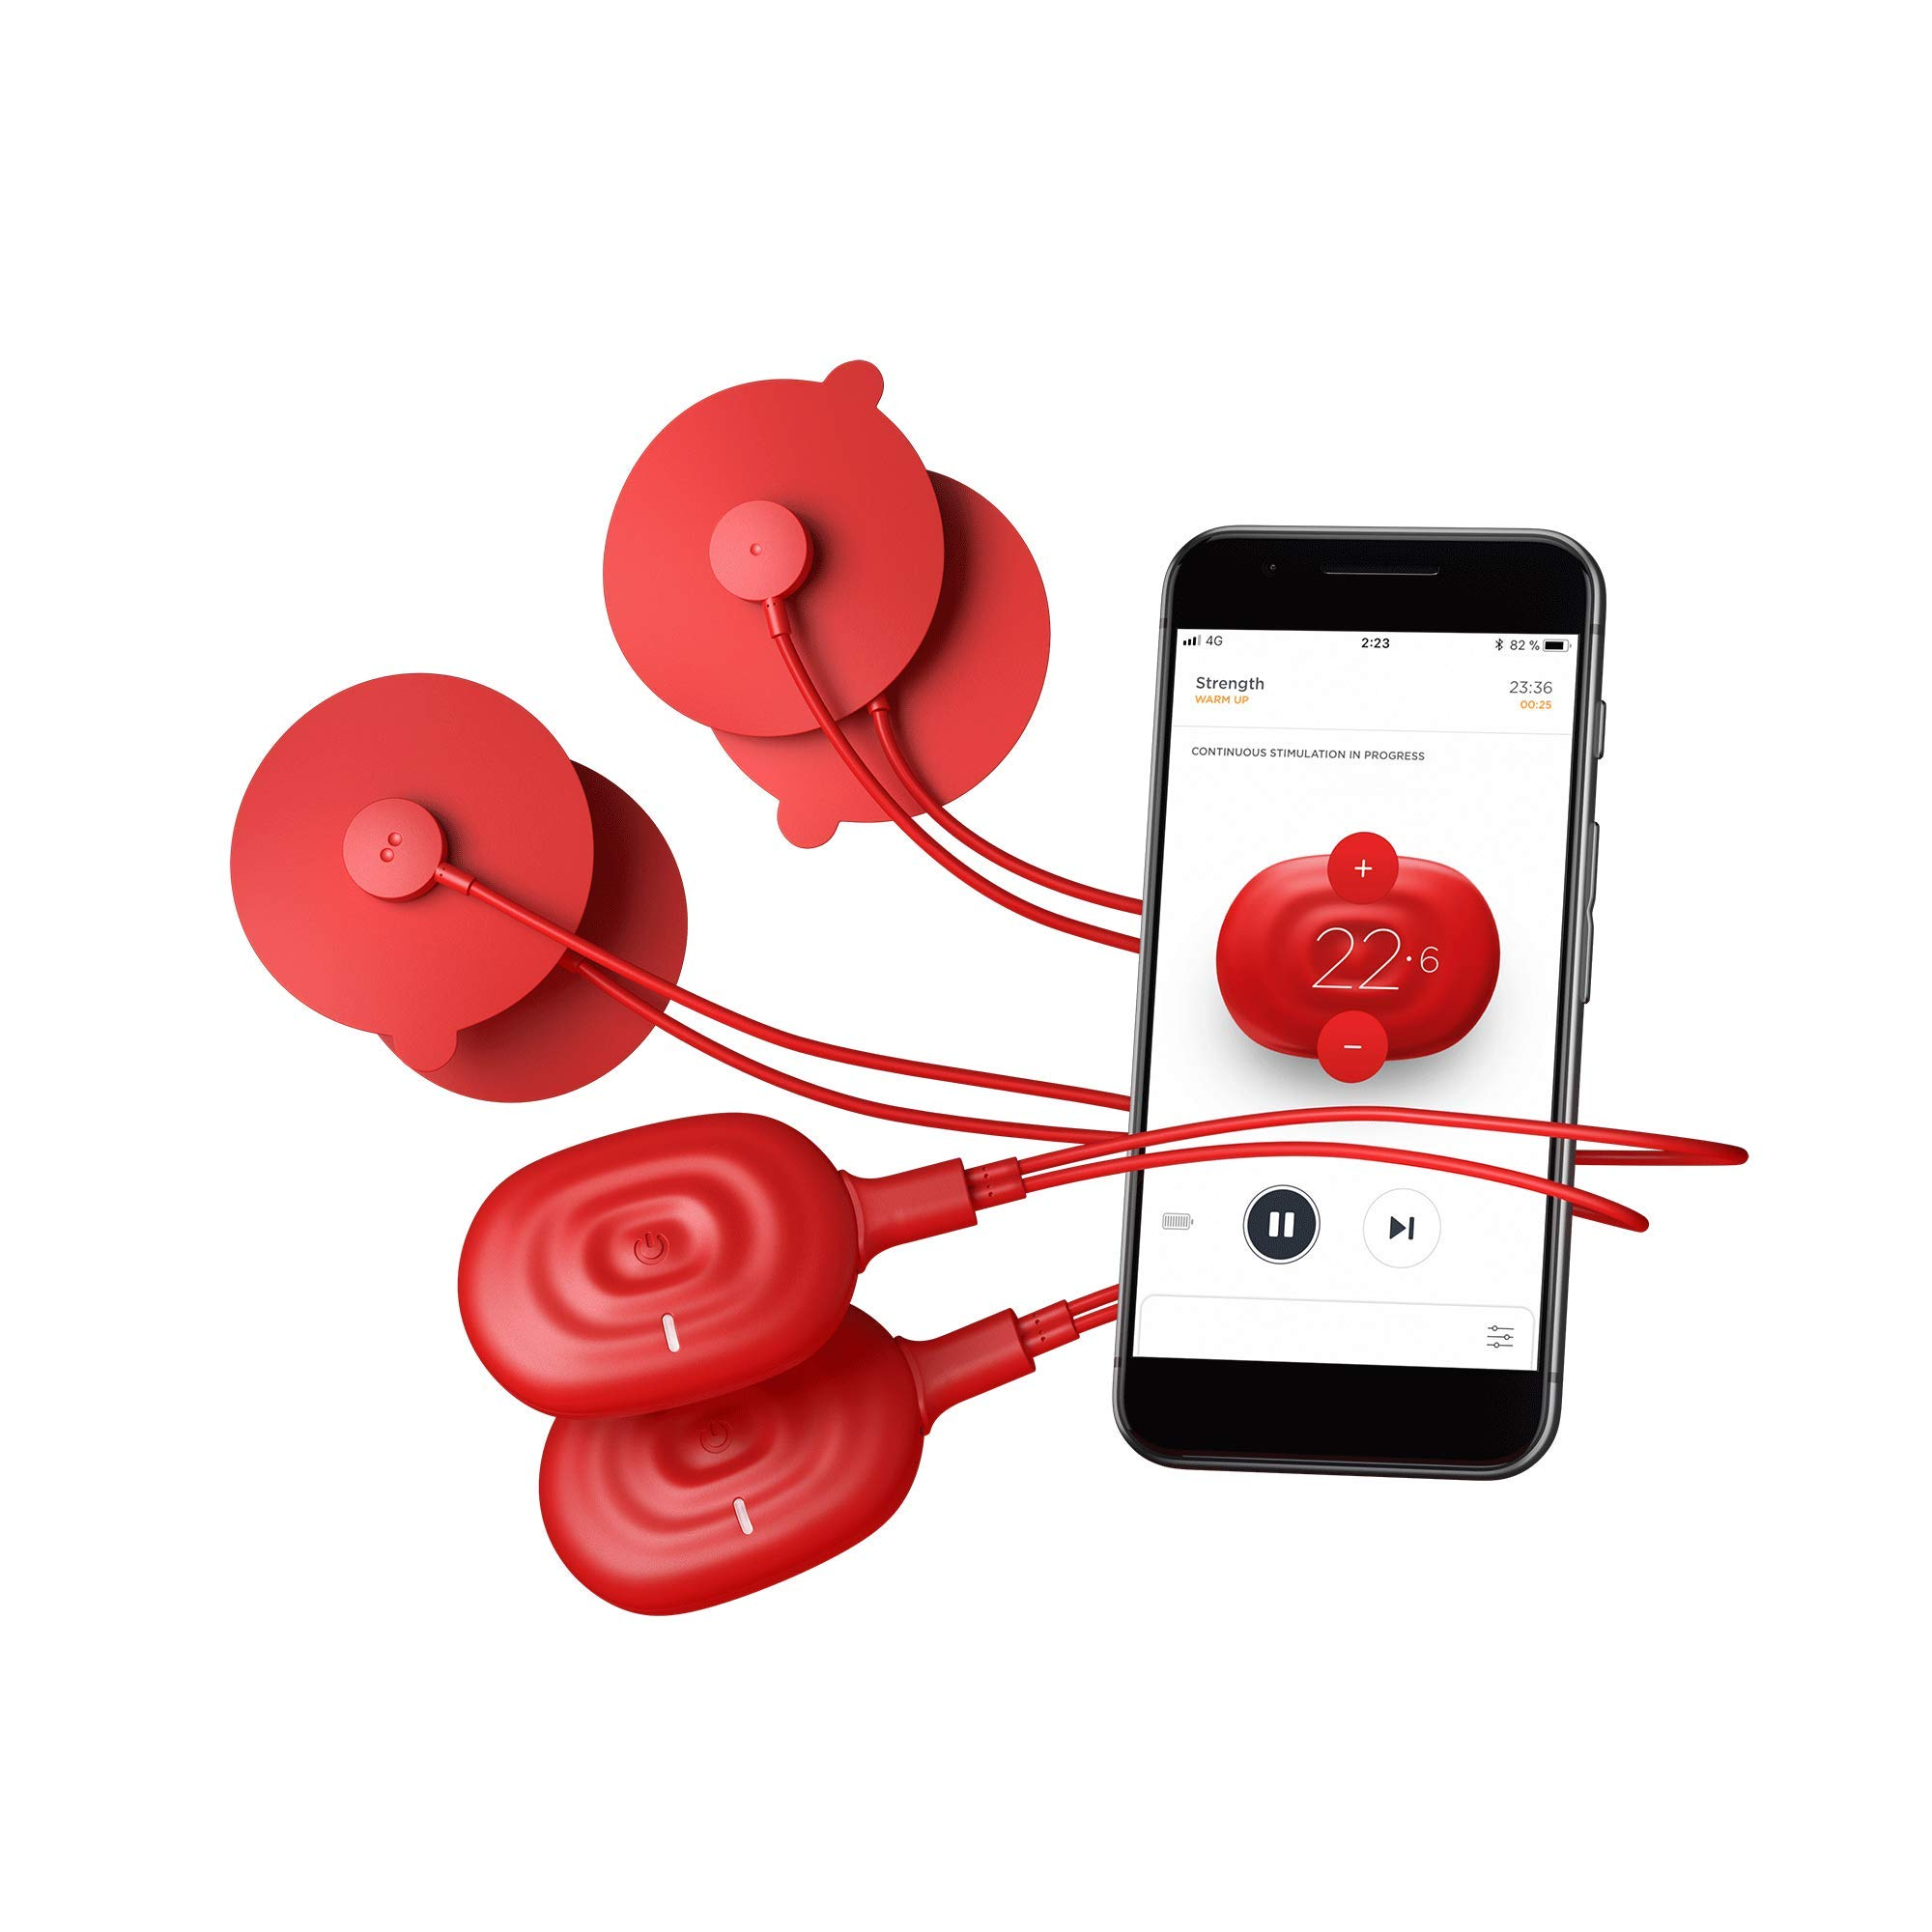 PowerDot 2.0 - Smart Electric Muscle Stimulator - Duo - Red - App Controlled Wireless Electrical Muscle Stimulator for iOS and Android - Speed up Recovery, Improve Strength, Reduce Risk of Injury by Powerdot (Image #1)